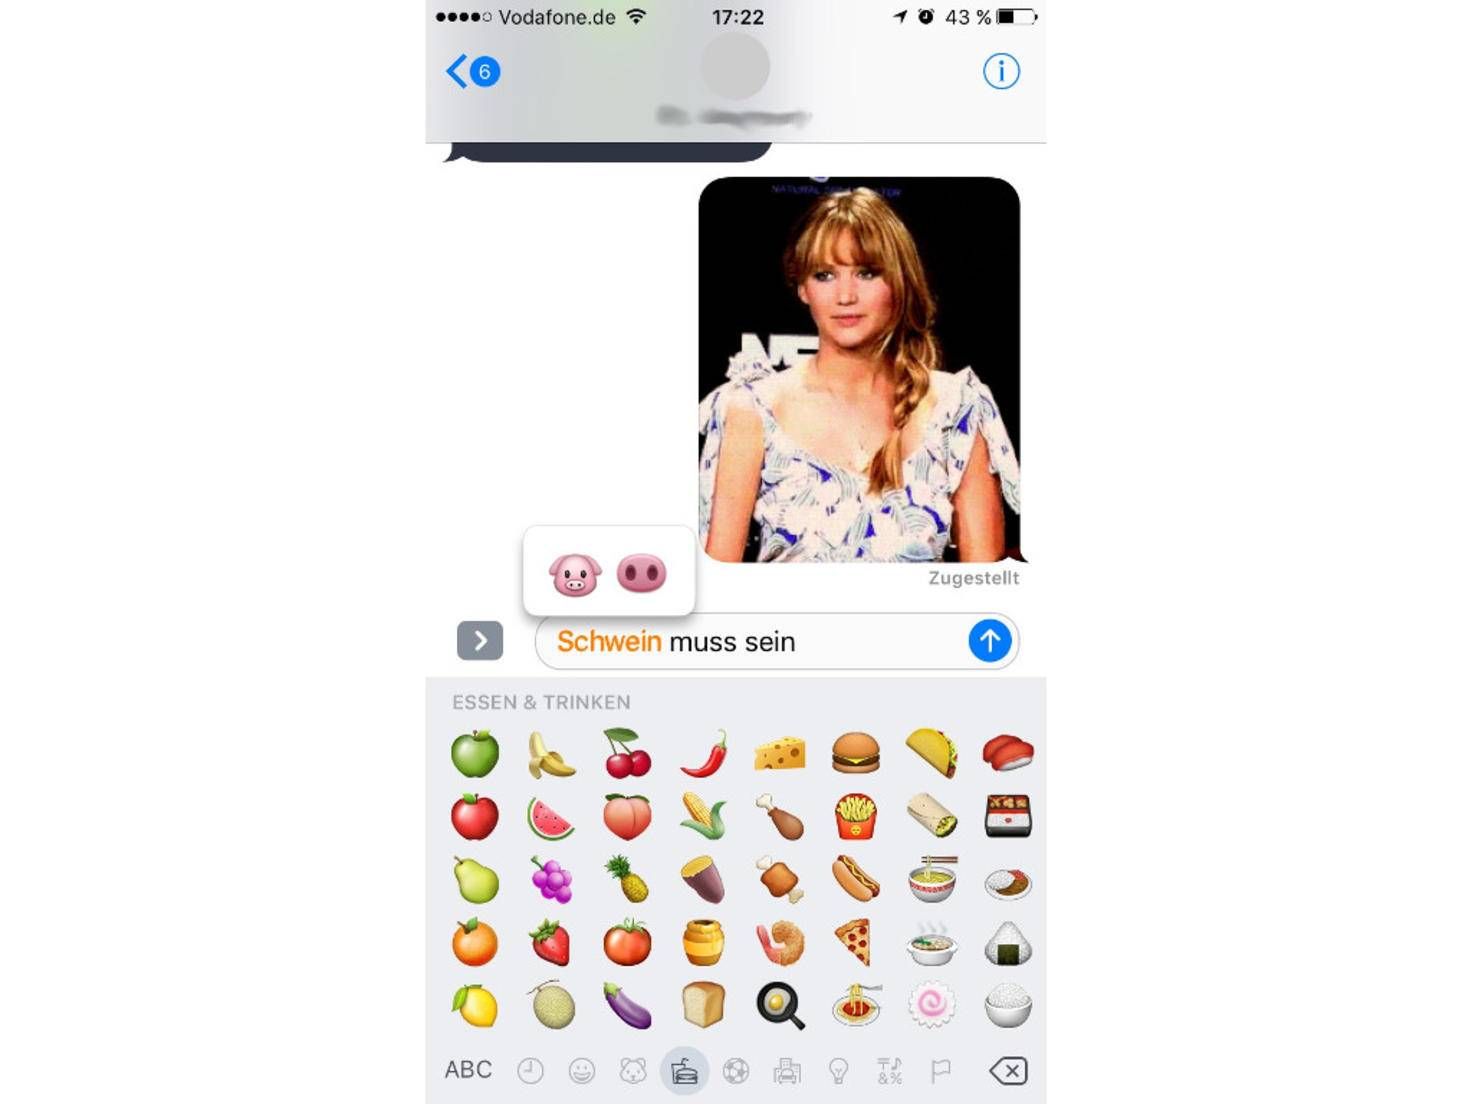 iMessage iOS 10 Emojis